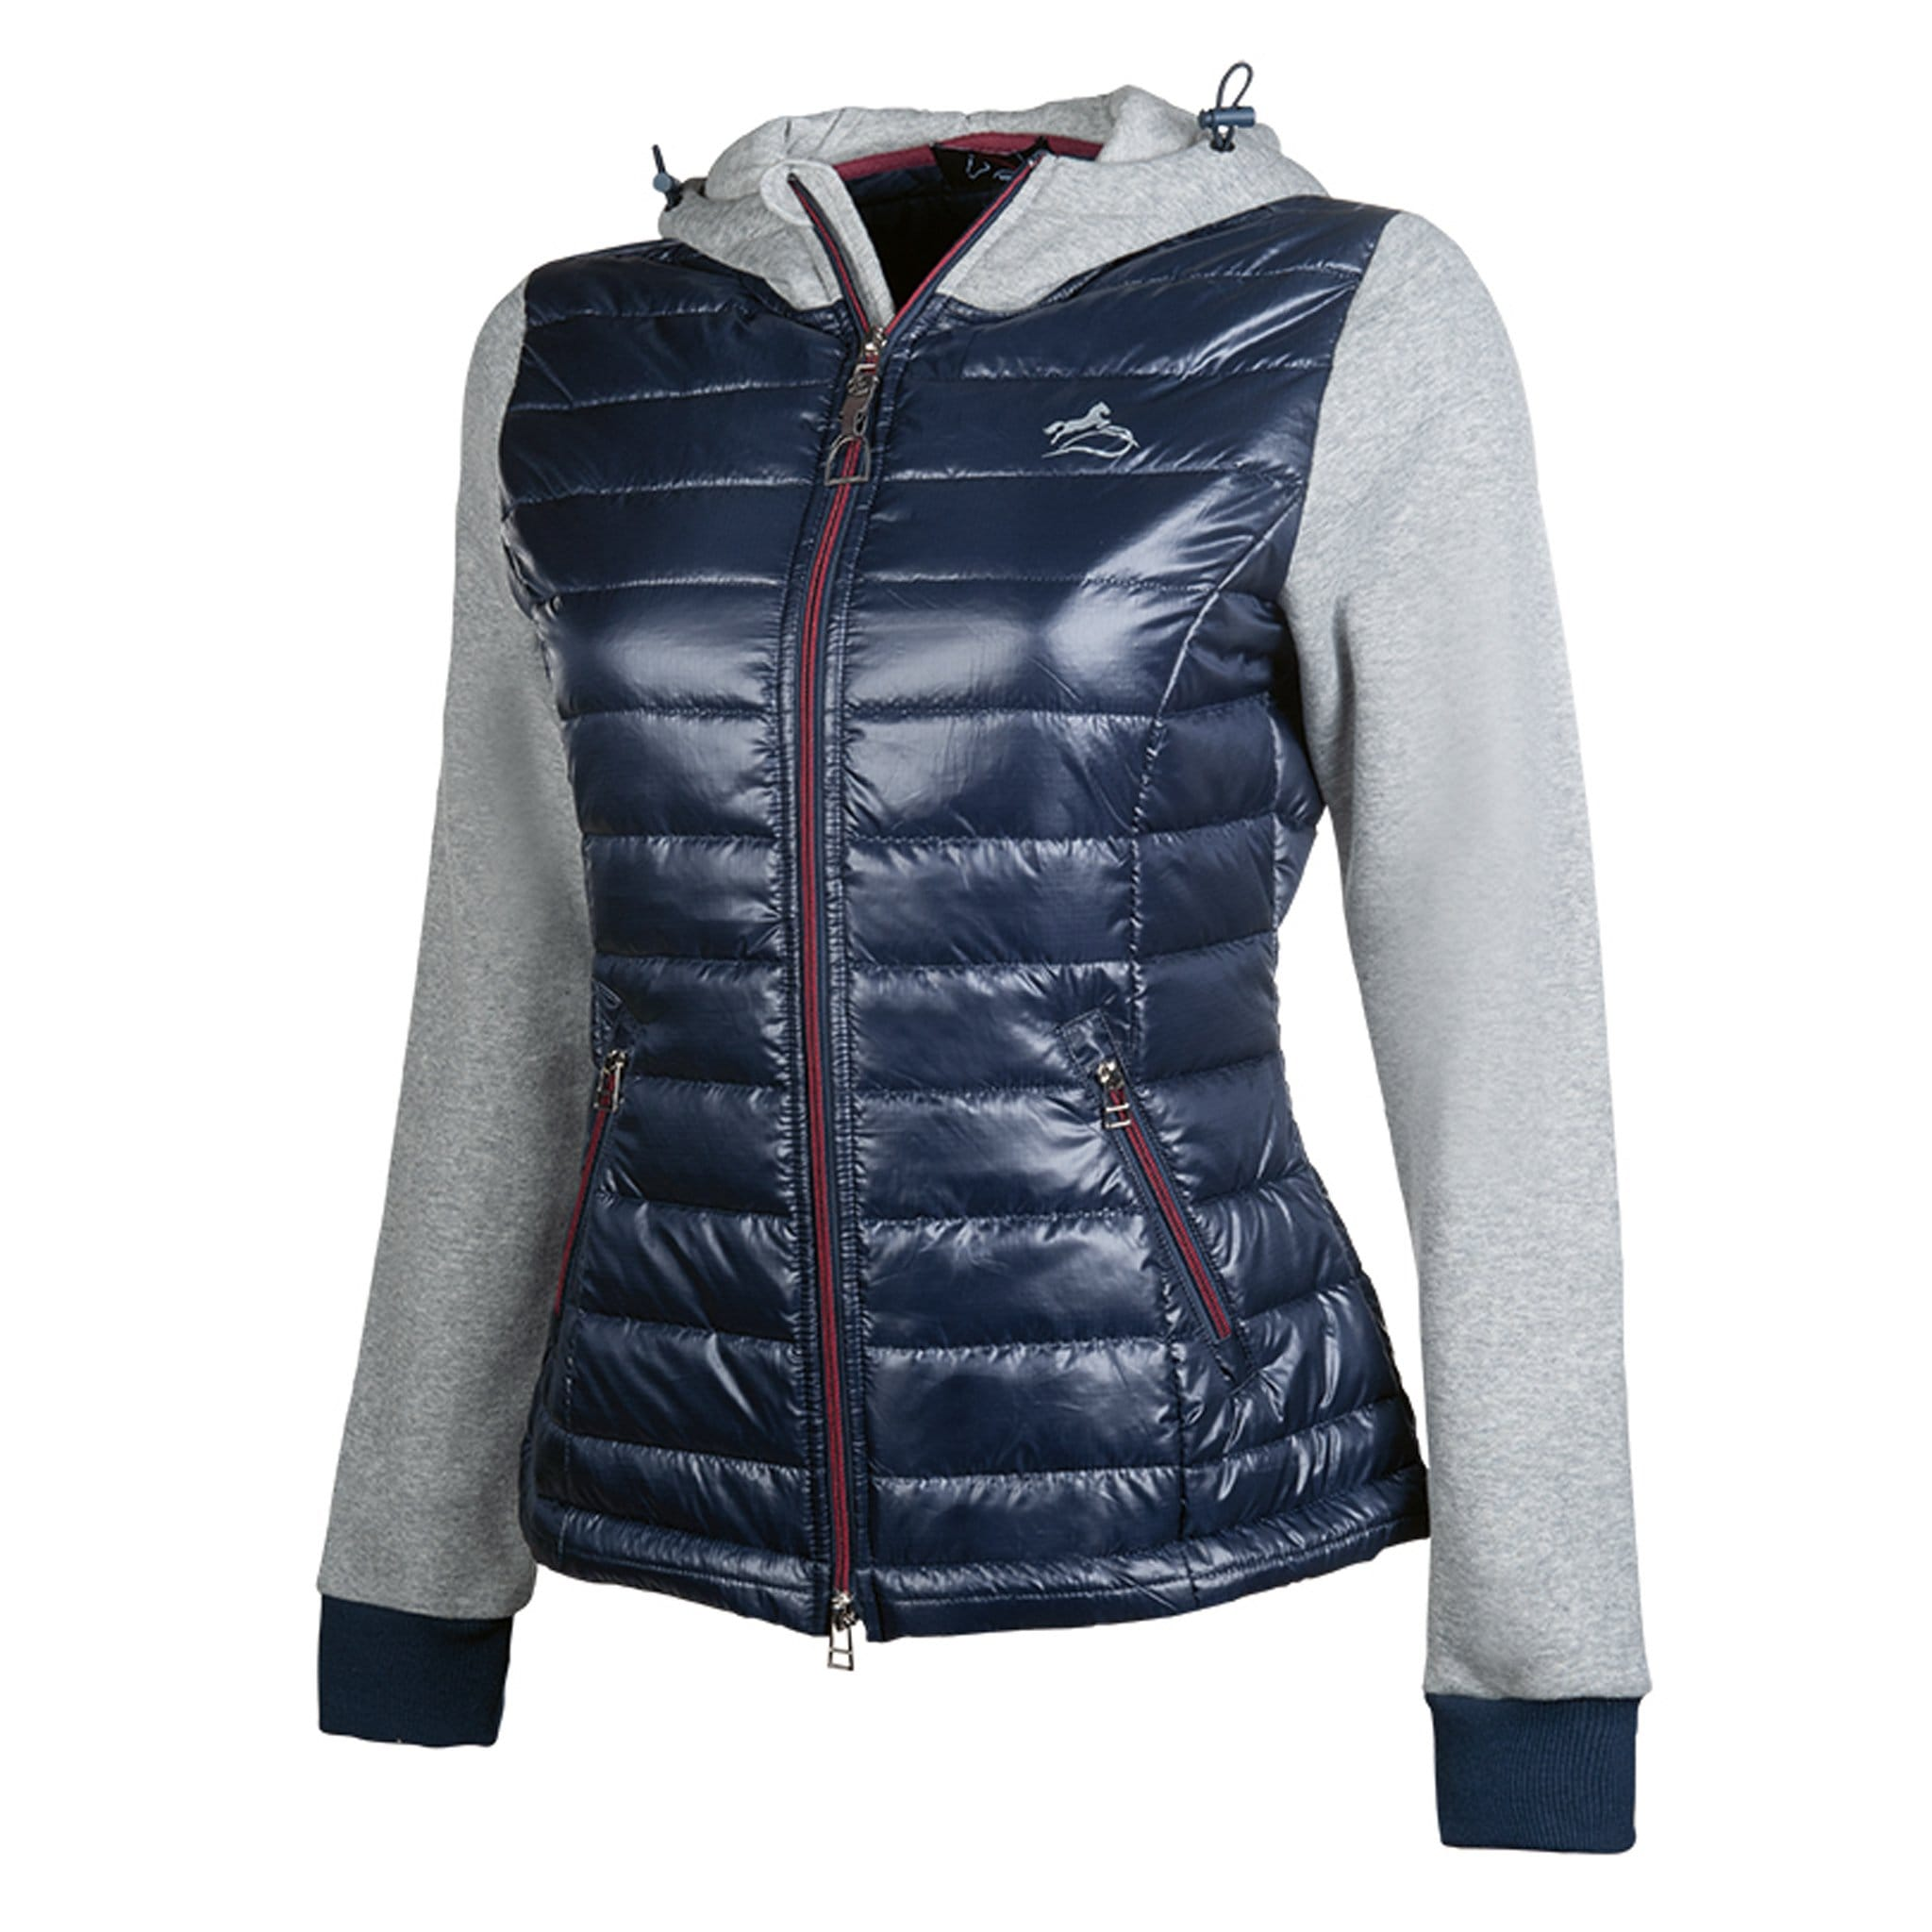 HKM Lauria Garrelli Morello Sweat Jacket 11954 Indigo Blue and Grey Front Side View